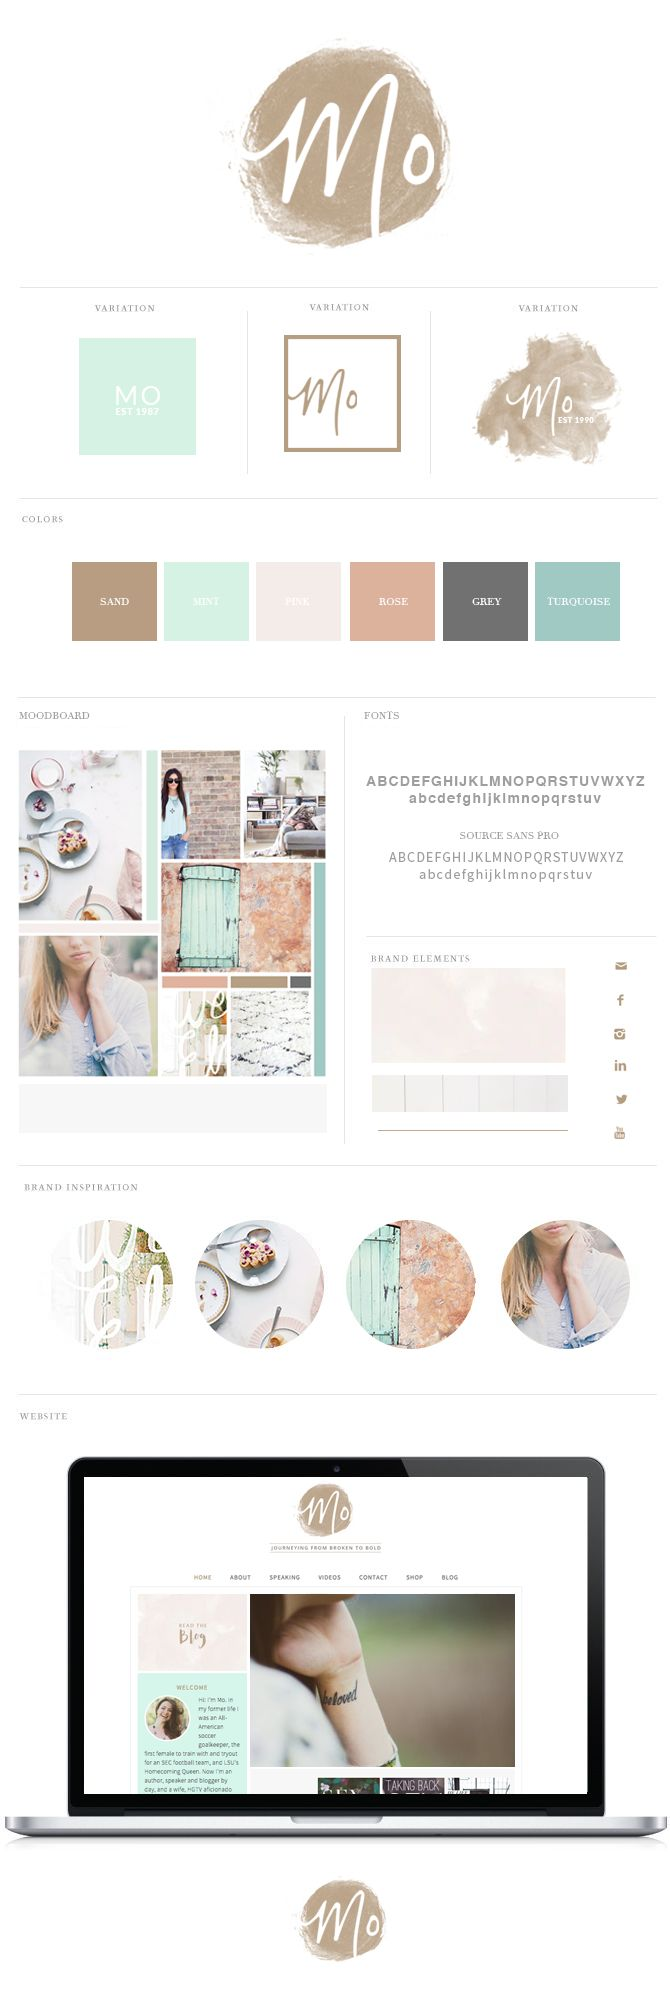 I am so excited to finally have Mo Isom's website and blog in the world with it's brand new style! Mo and I had a lot of fun bringing her feminine but bold style to life with this identity. Here is the branding, updated graphic elements, and website design for www.moisom.com. For Mo's new brand …